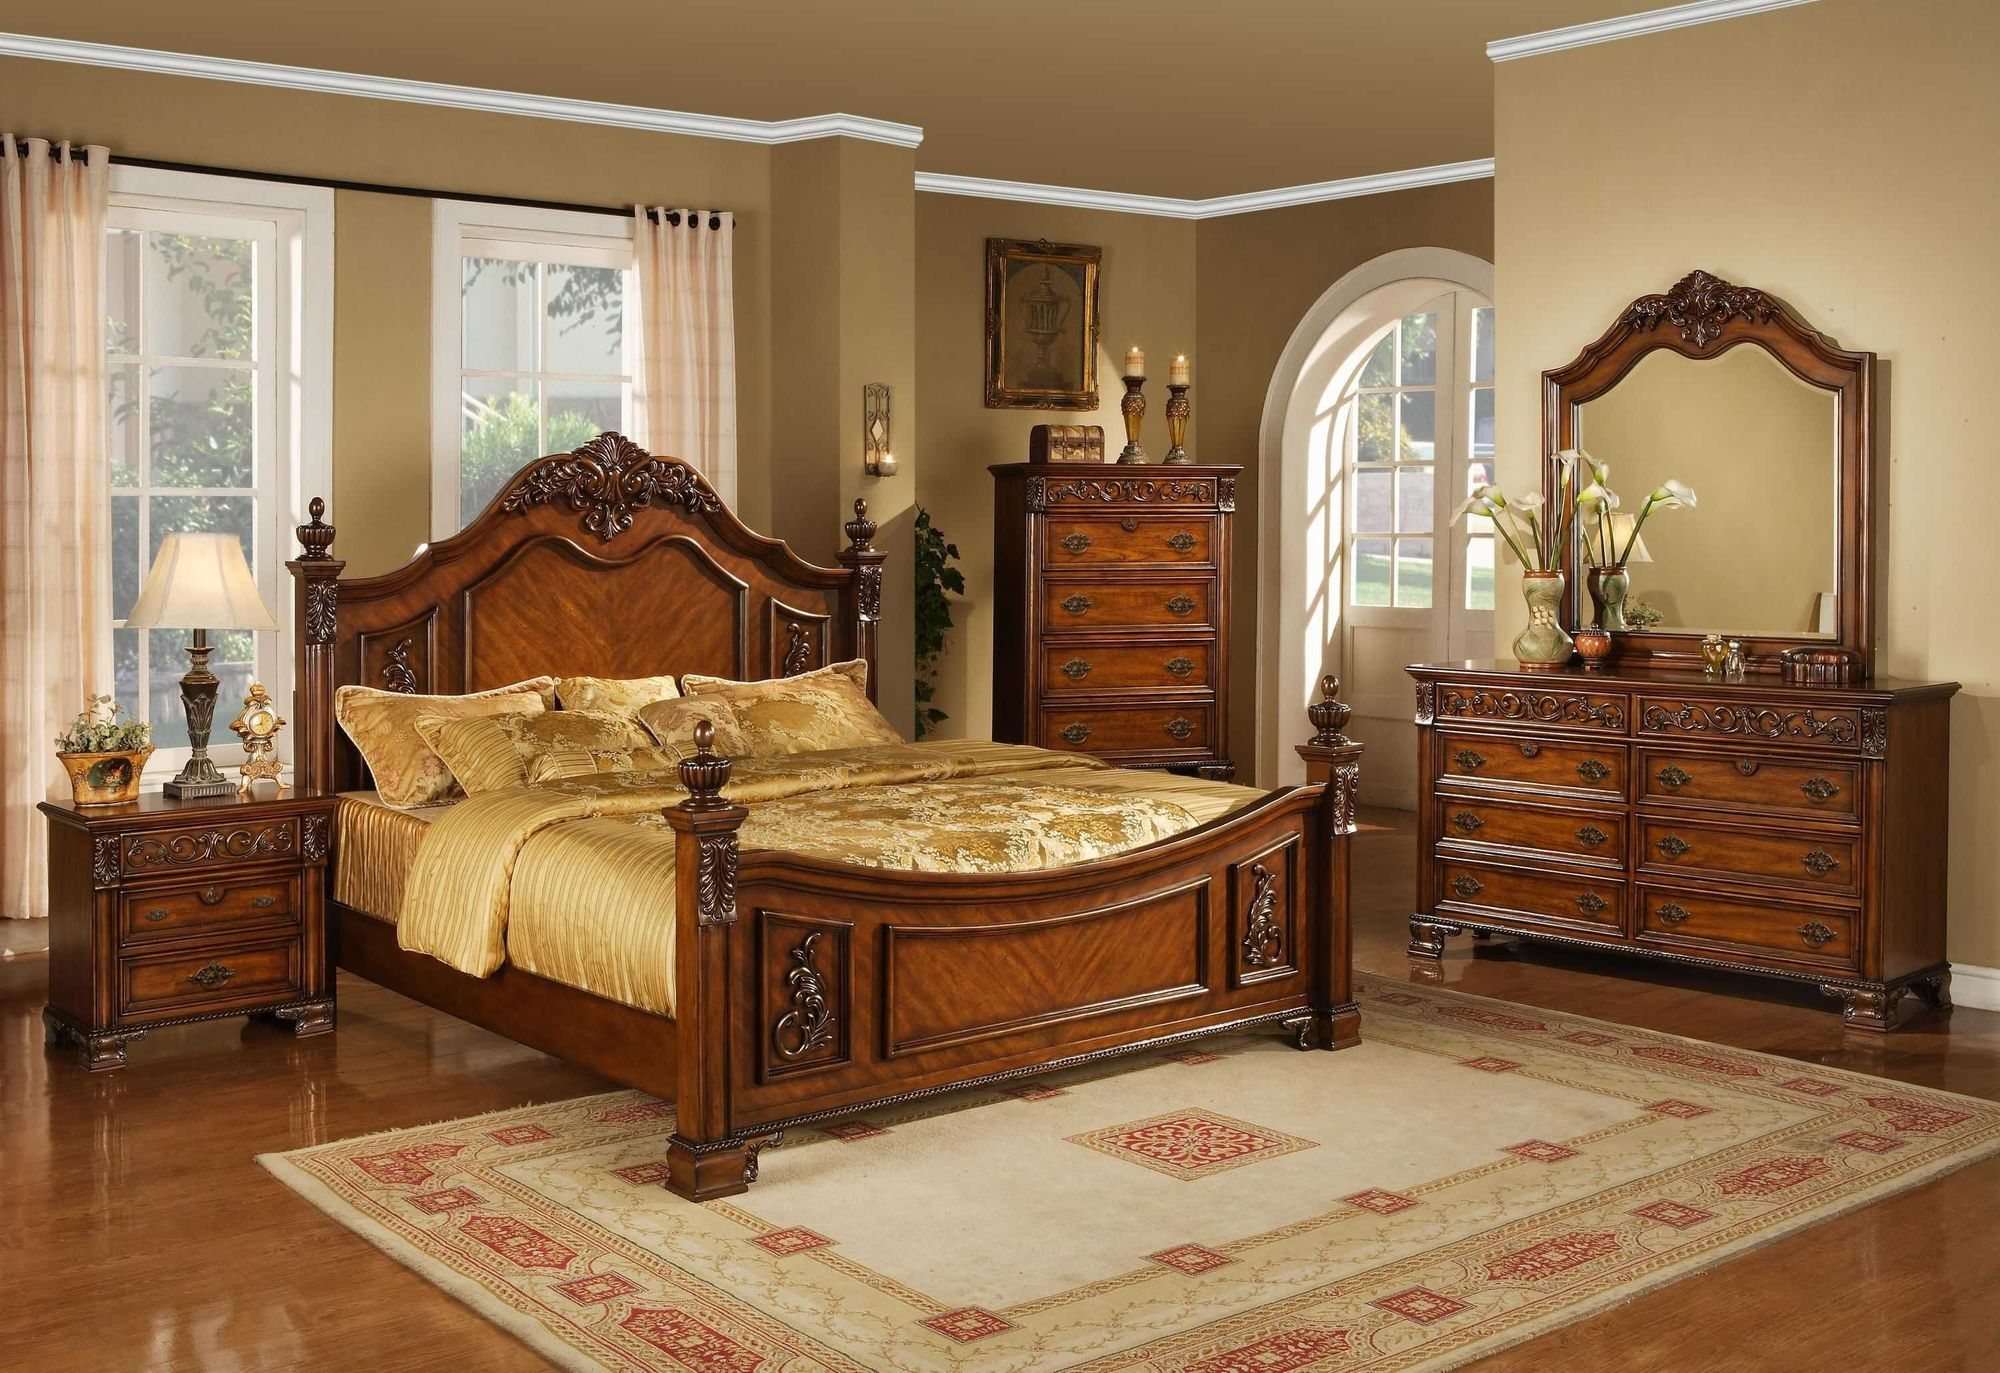 Image of: Queen Size Bedroom Furniture Sets